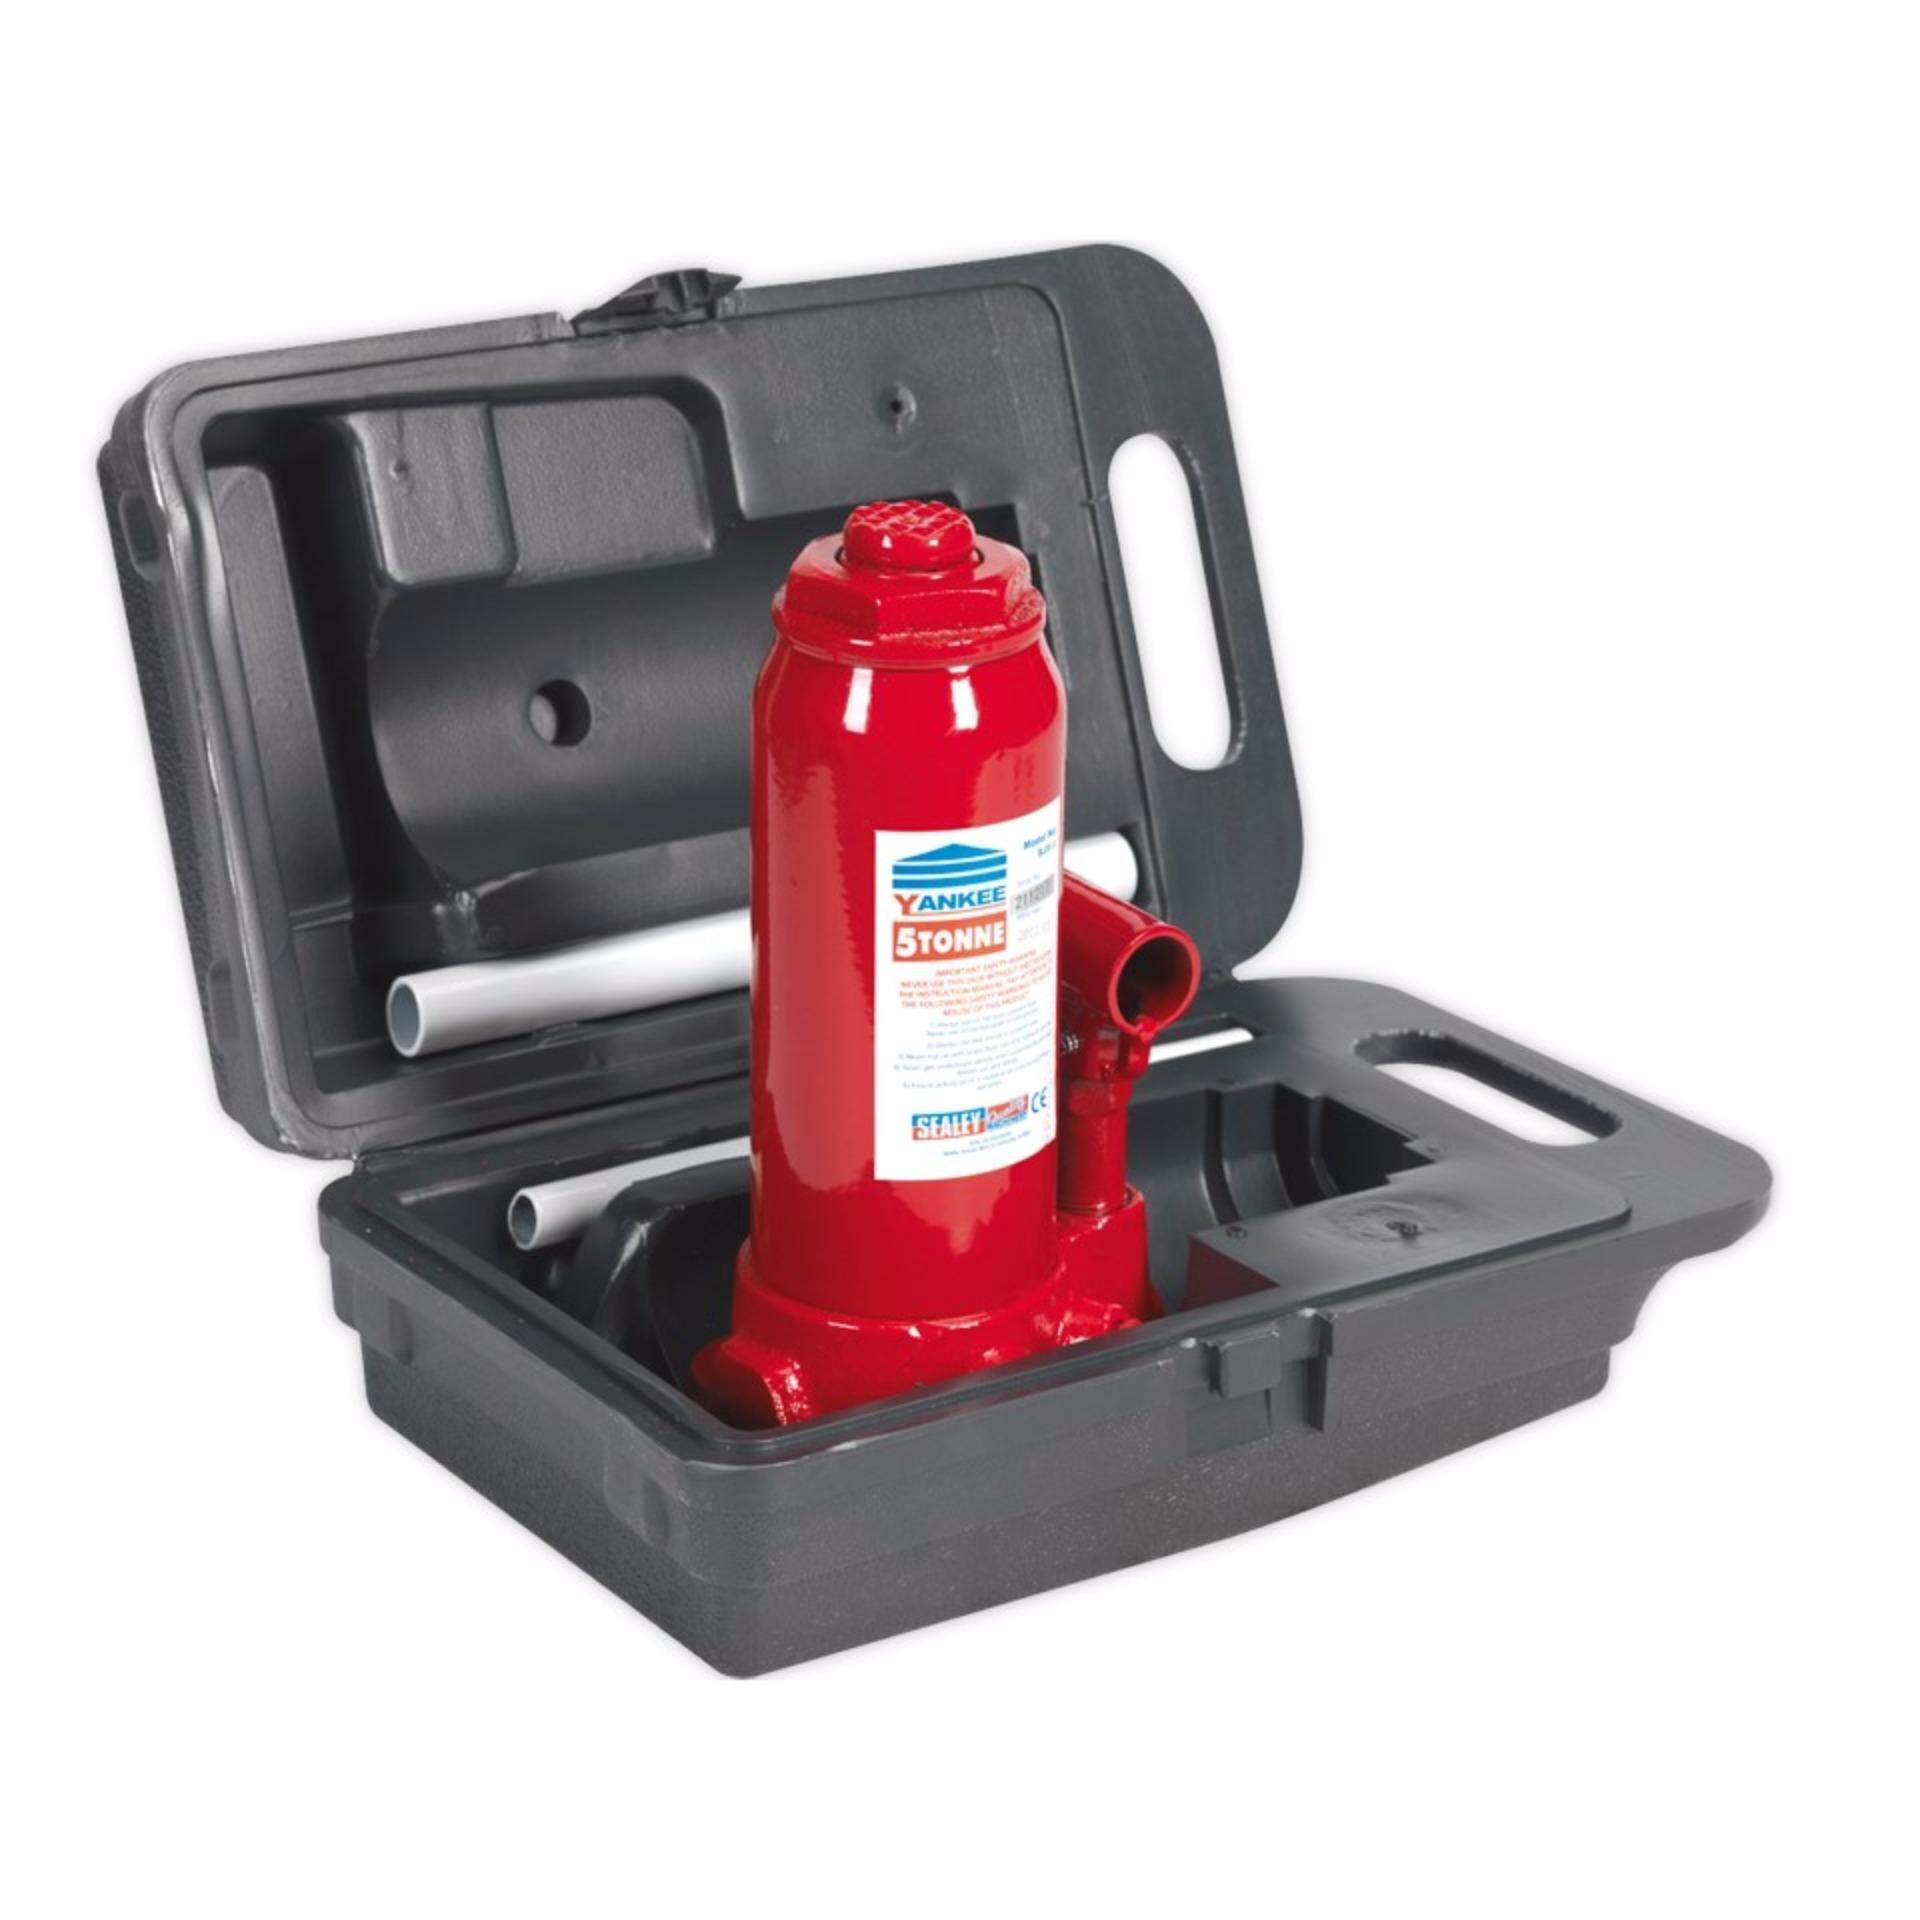 (Clearance) Sealey Bottle Jack 5tonne with Carry-Case [Showroom Unit]